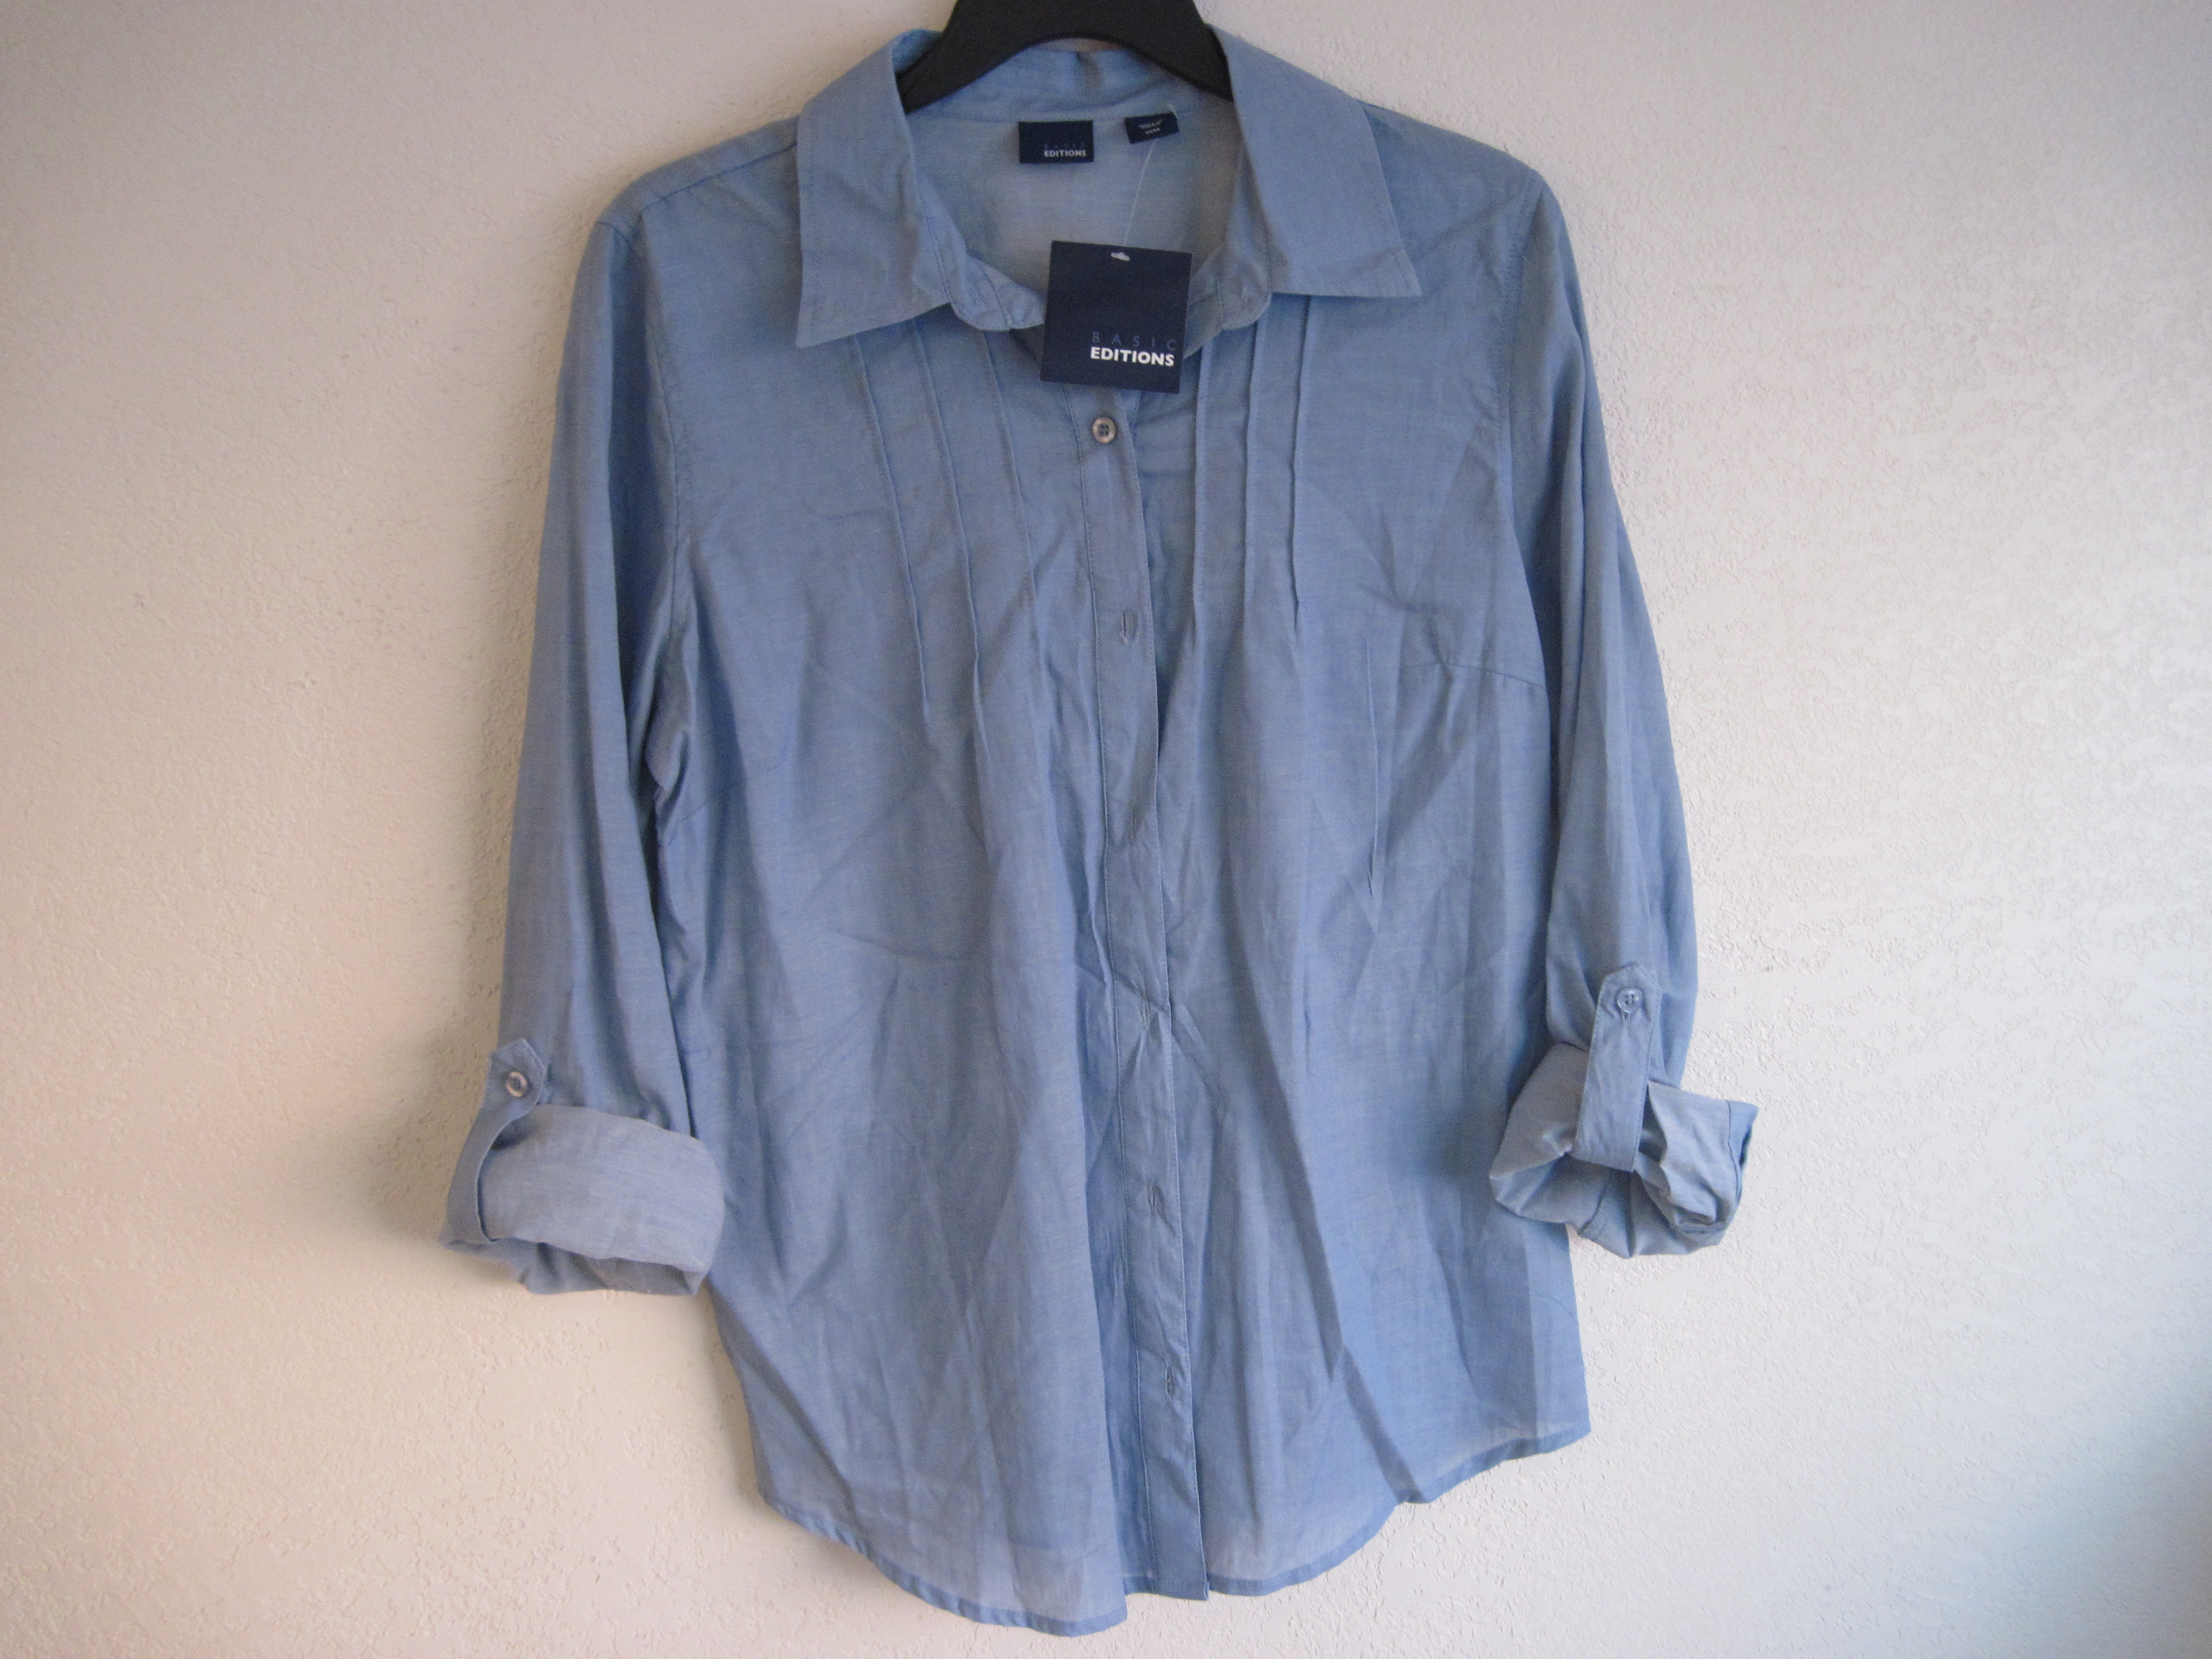 Basic Editions Sz M Pintuck Crinkle Woven Shirt ( sea blue)